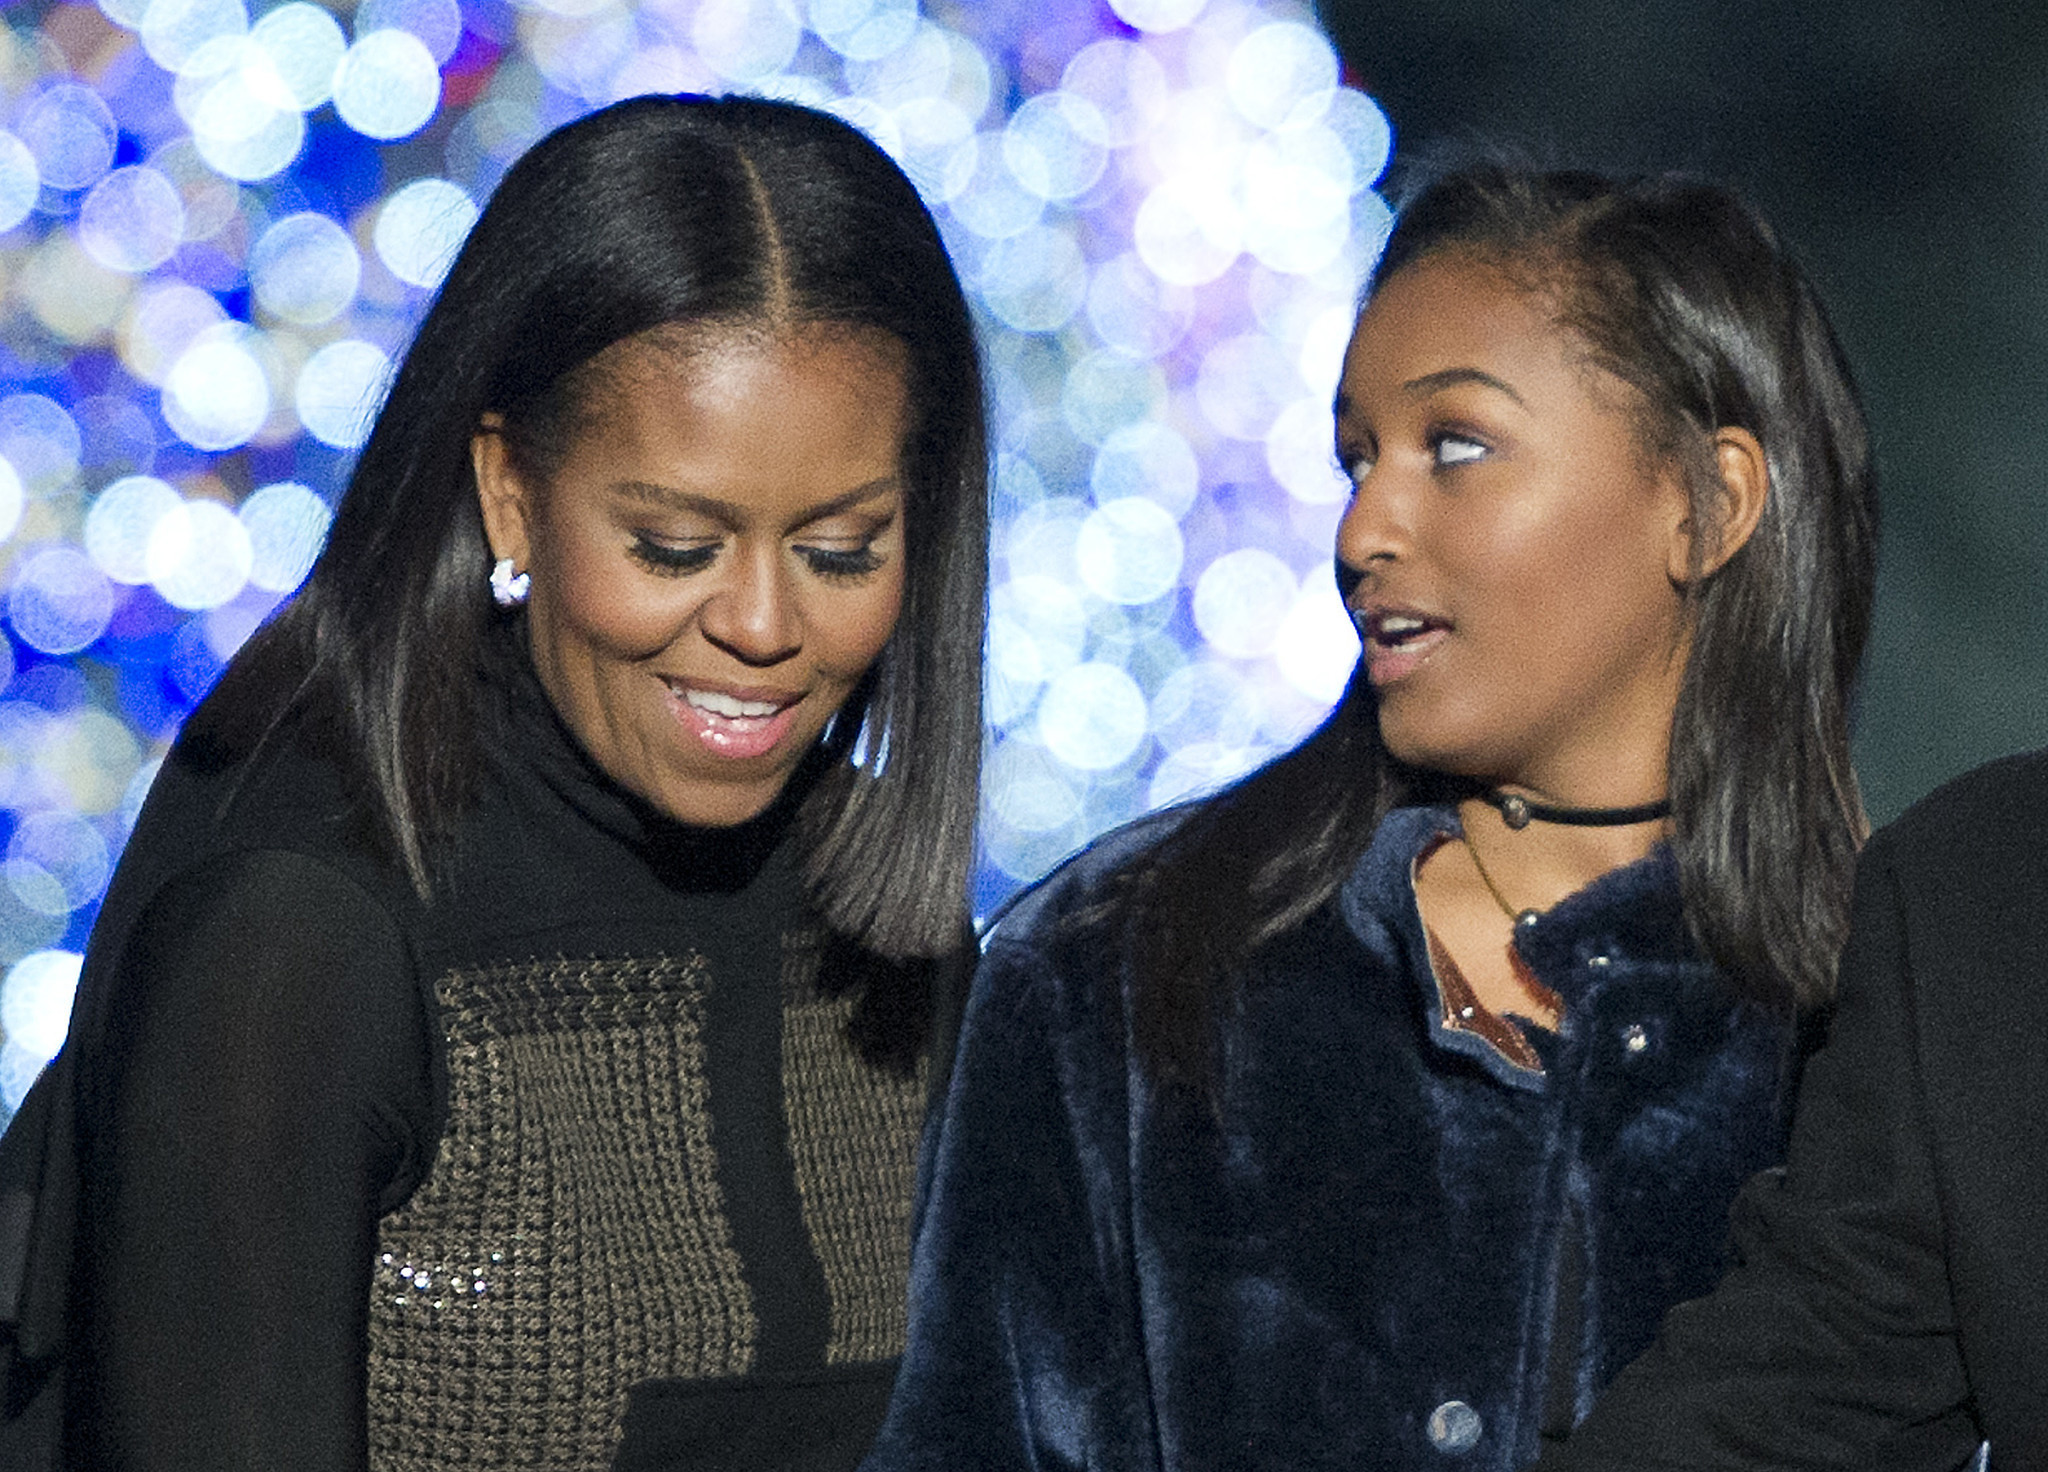 Michelle Obama got weepy dropping off her youngest daughter, Sasha, at college